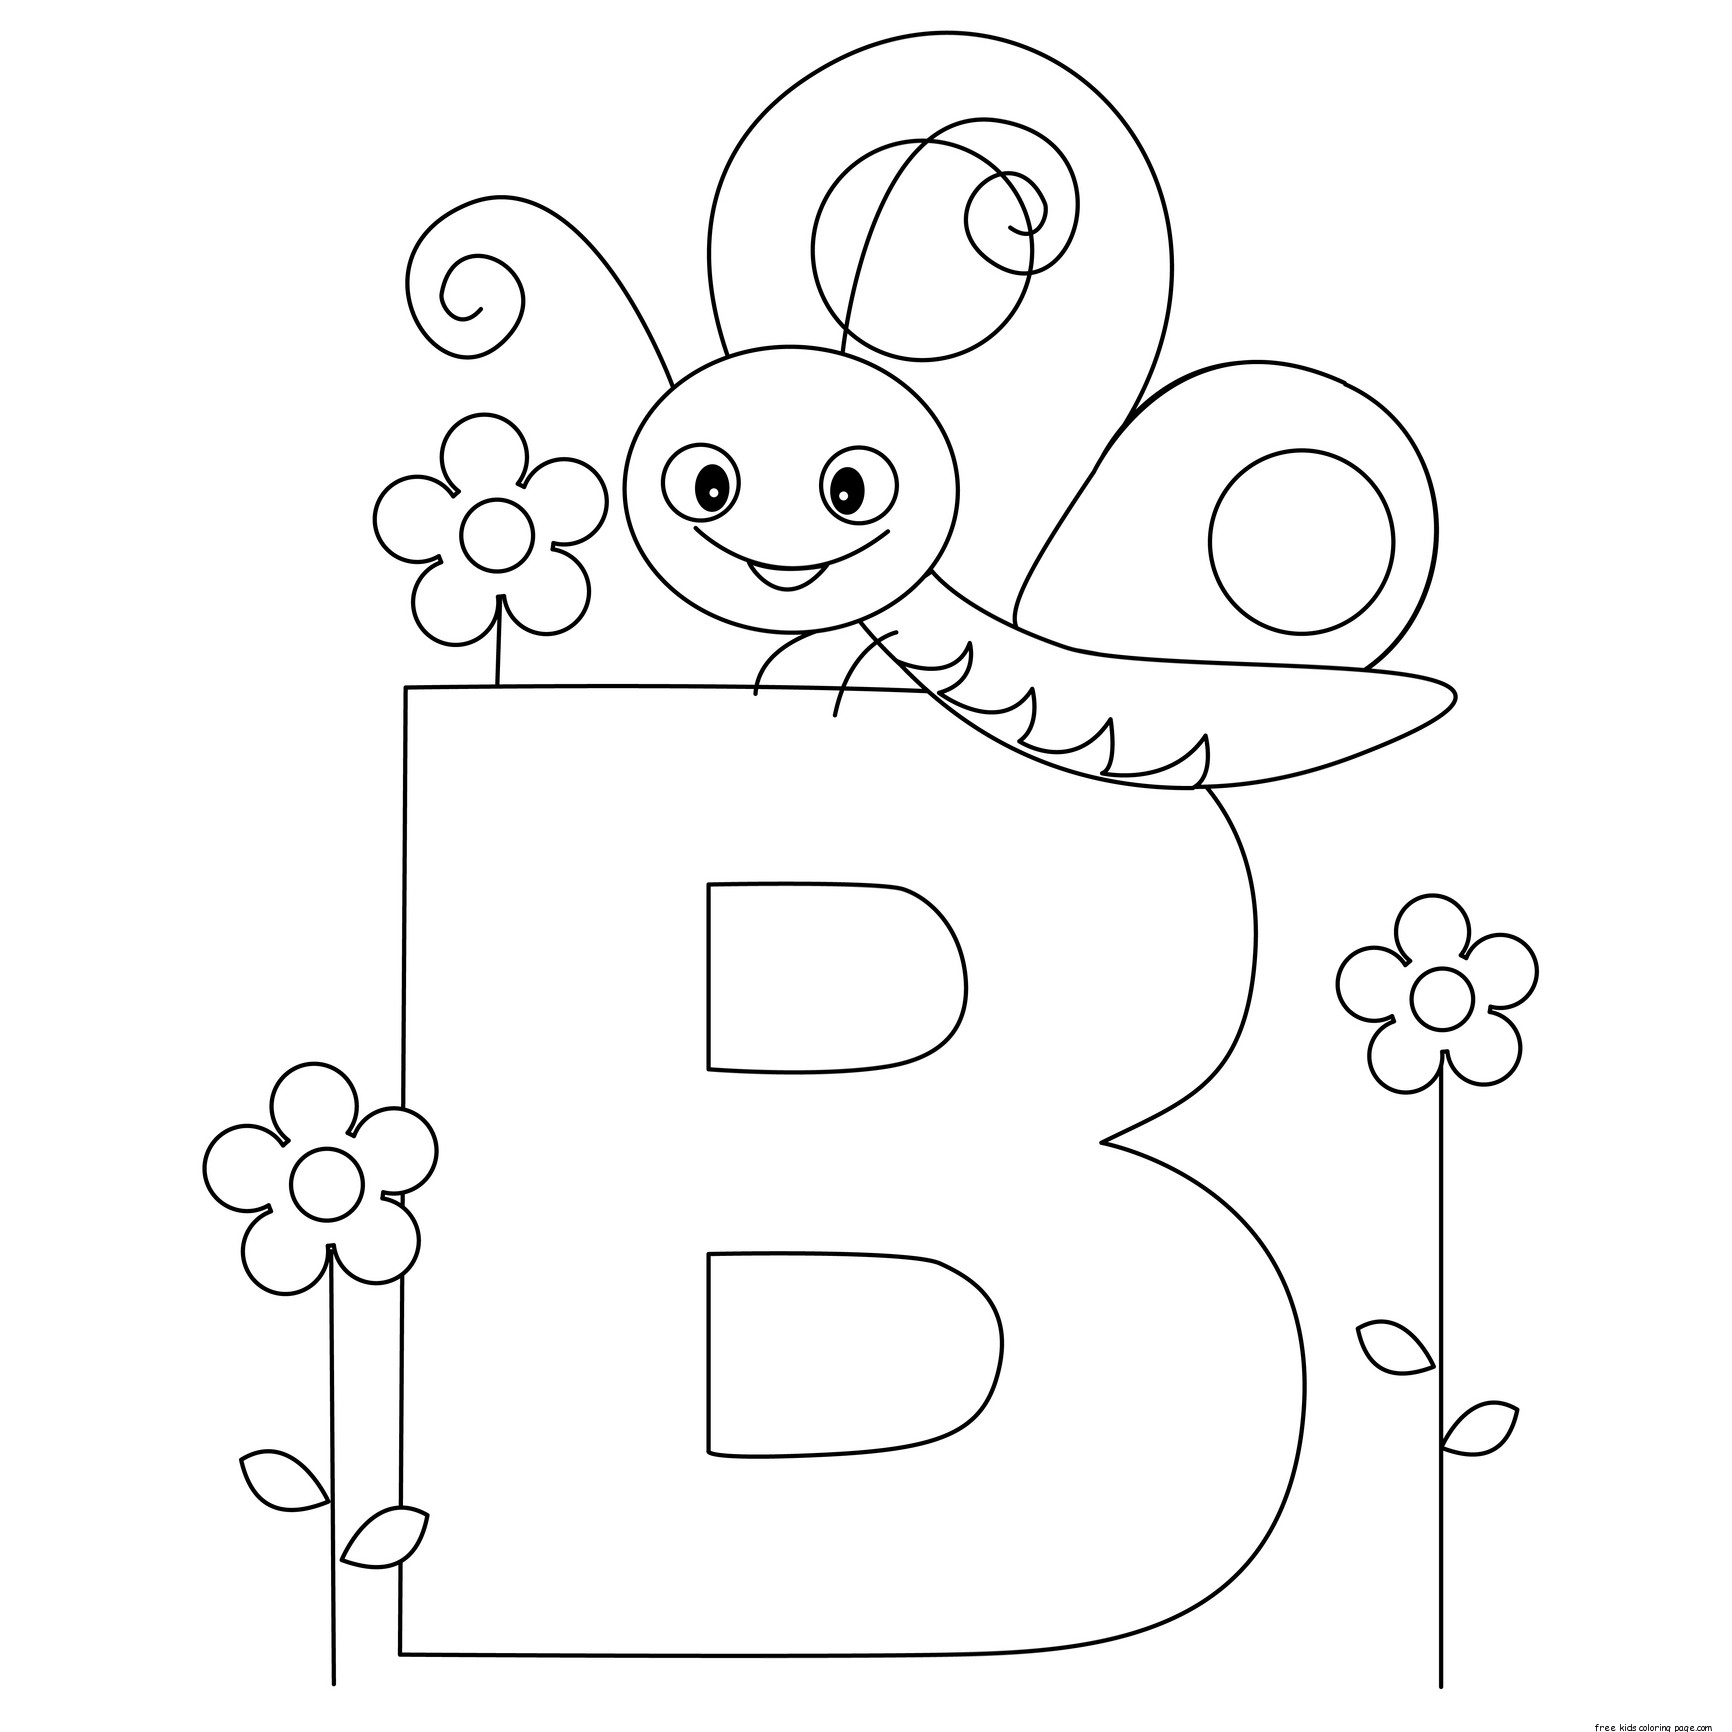 Printable Animal Alphabet Letter B Butterflyfree Printable Coloring Pages For Kids